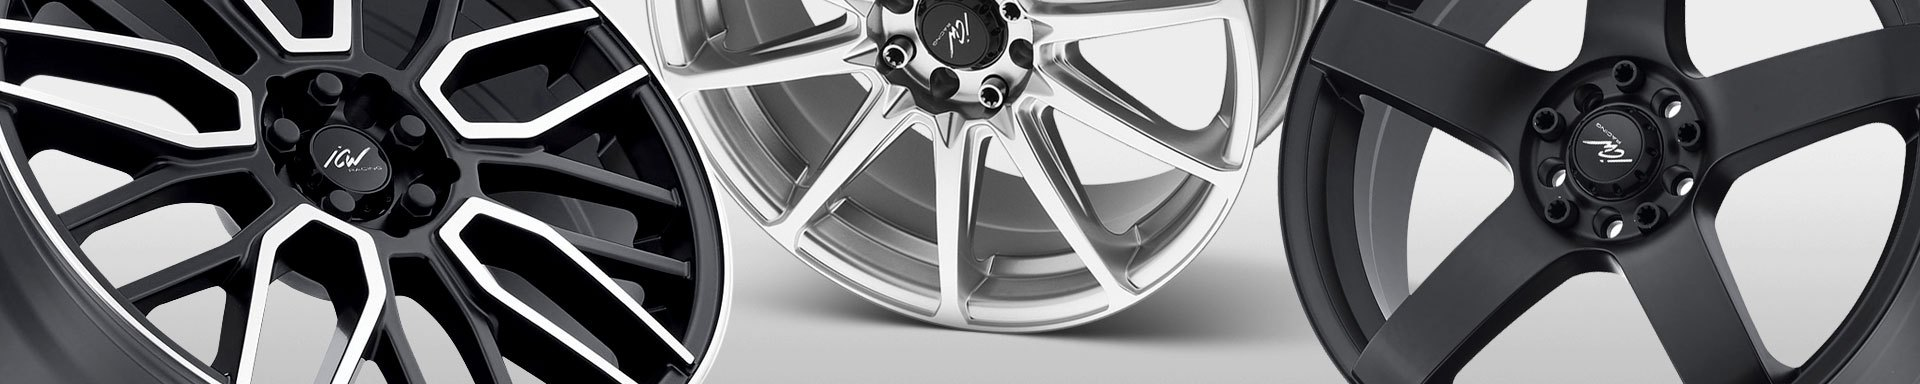 Universal ICW RACING CUSTOM WHEELS